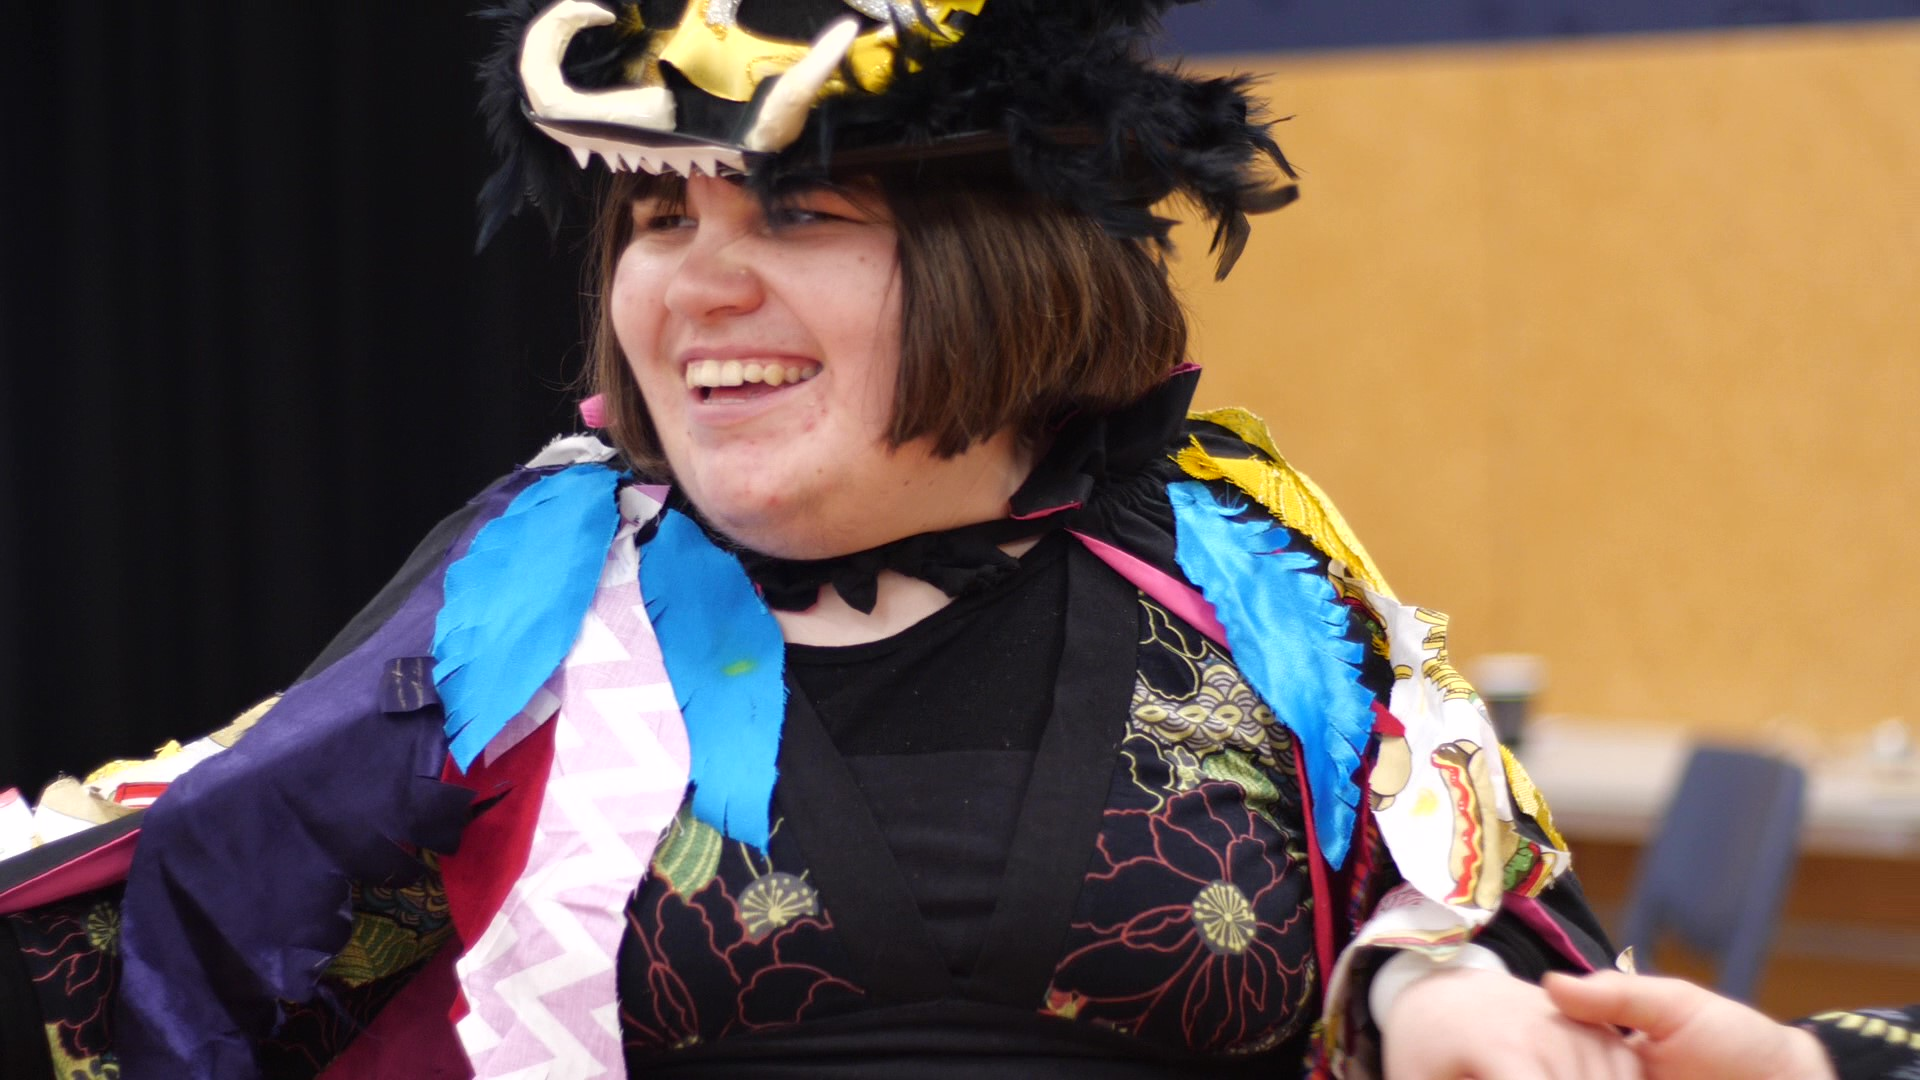 A close up of Maggie Rose Paine showing her Mag Bird Wearable Arts piece at the Disability Pride Week celebration at Te Whaea – National Dance and Drama Centre, Wellington, December 2018. A Mag bird is a cross between a Kunikuni pig and a staunch eagle. Maggie Rose is wearing a black top hat. The hat is covered in fluffy black feathers and has two cream coloured clay tusks on the front brim. She has a big smile on her face and looks like she is in her element! Her Mag Bird cloak is draped over her shoulders. It is covered in feathers made of all different sorts of patterned and colourful cloth.